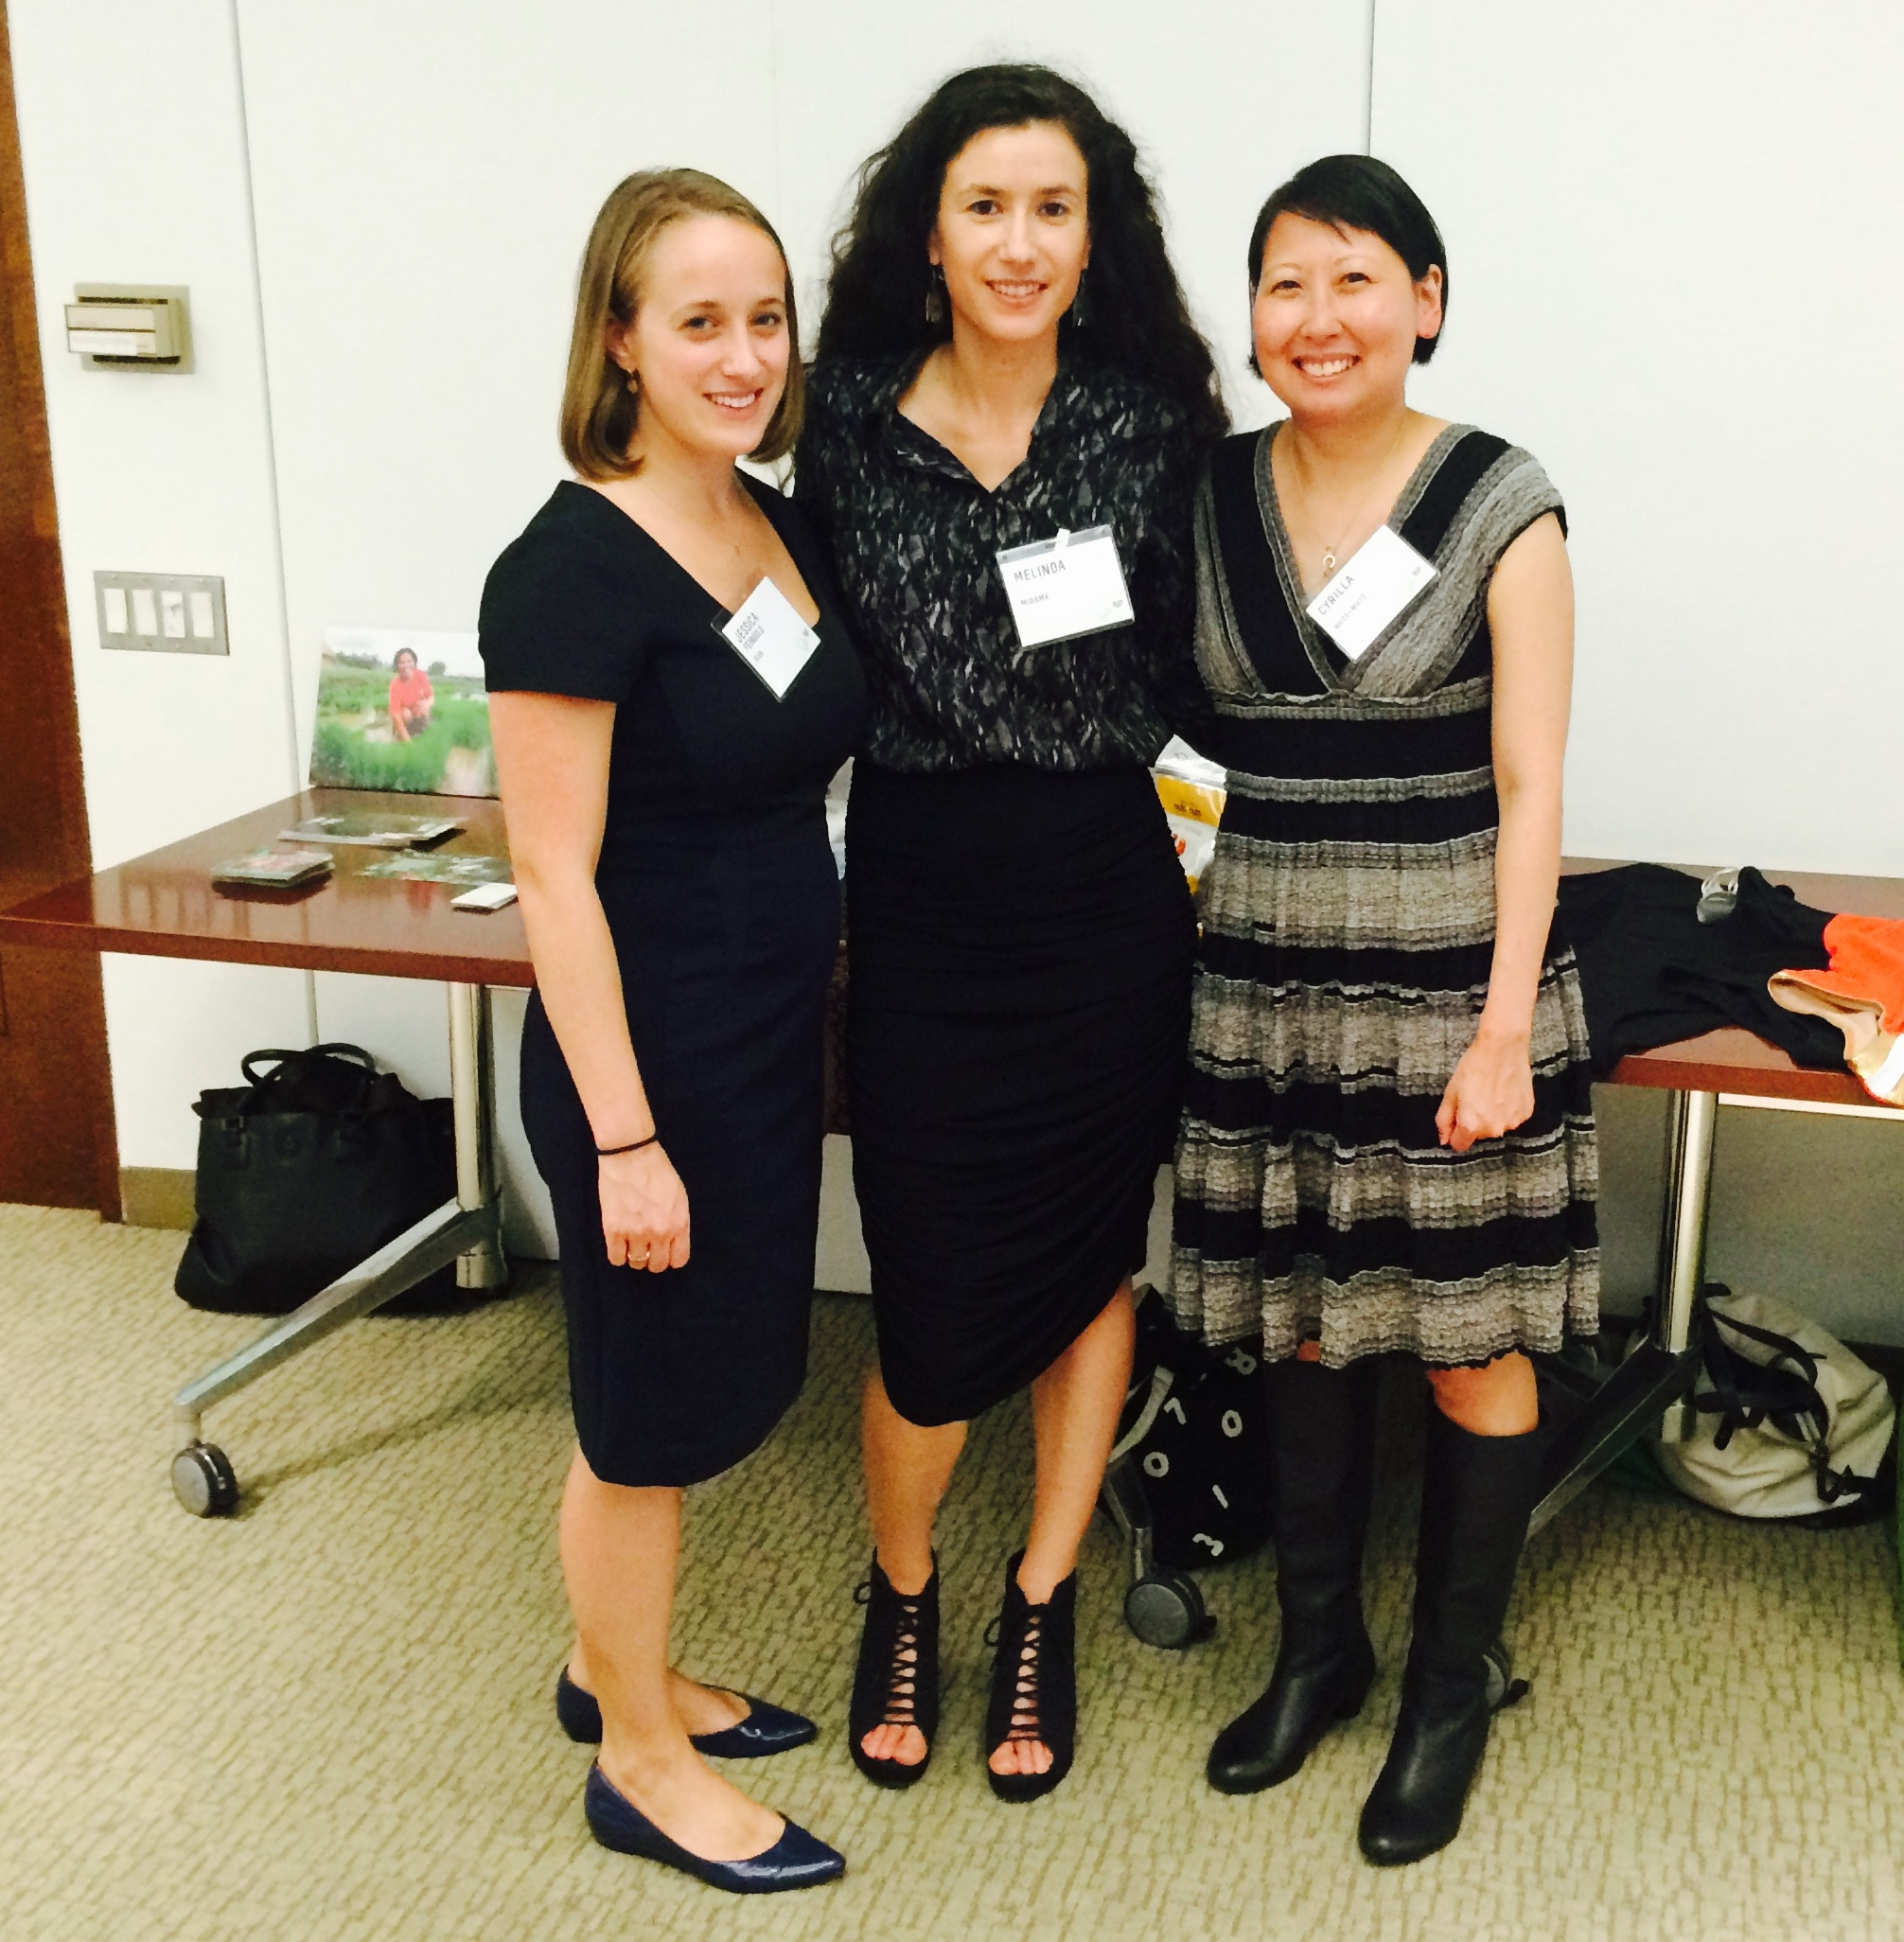 J essica Feingold of Kiva Zip, Melinda of Mirame, and Cyrilla of  Nuts Plus Nuts